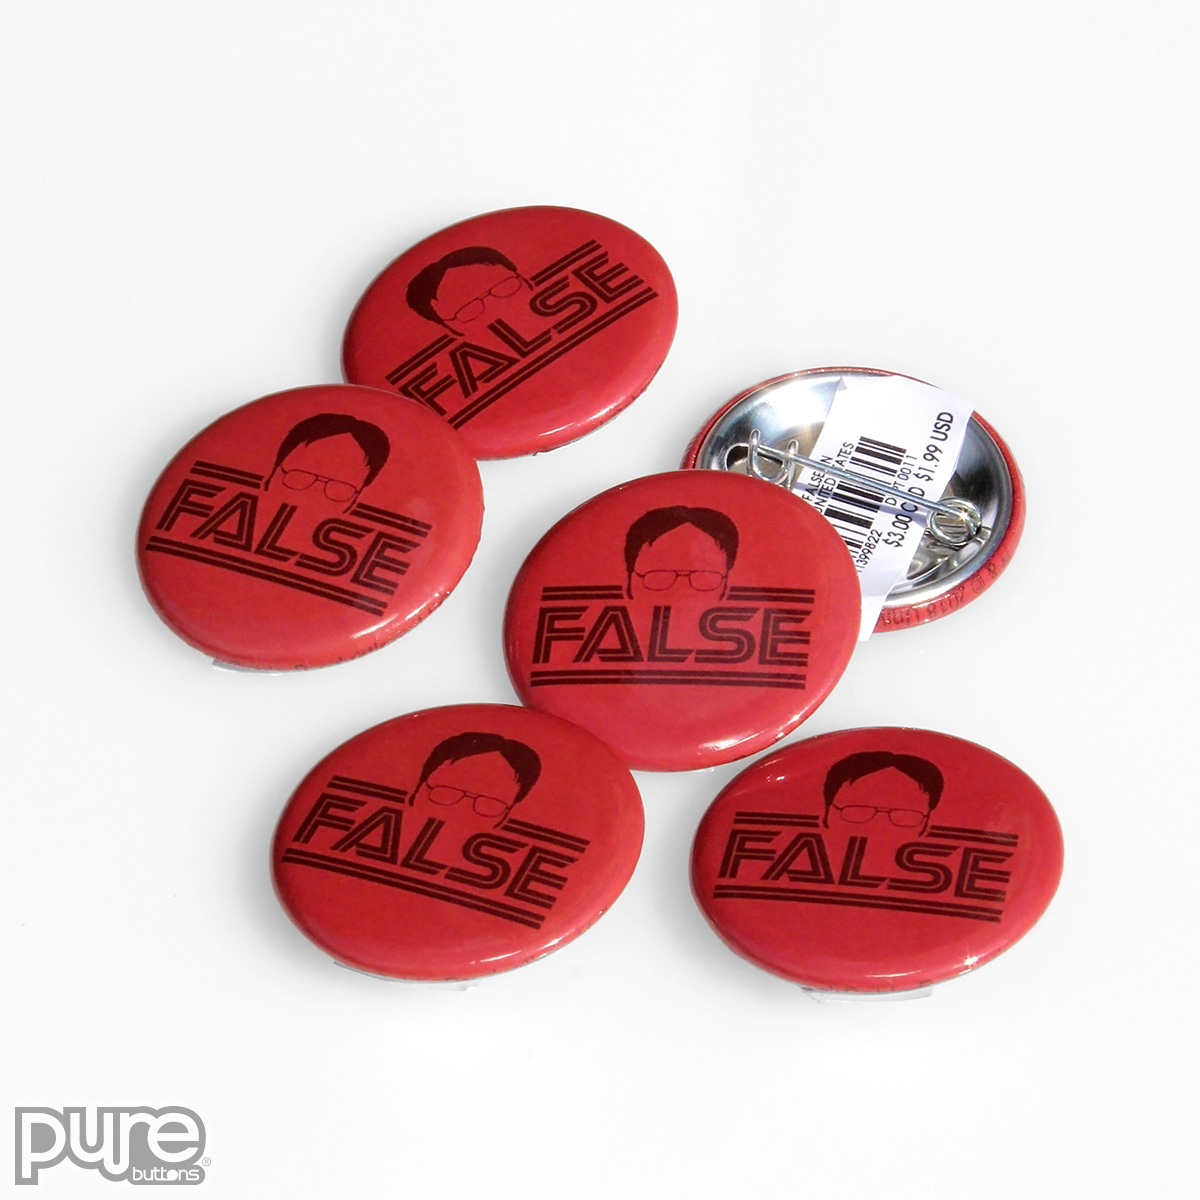 The Office NBC Official Merchandise - Dwight False Custom Buttons